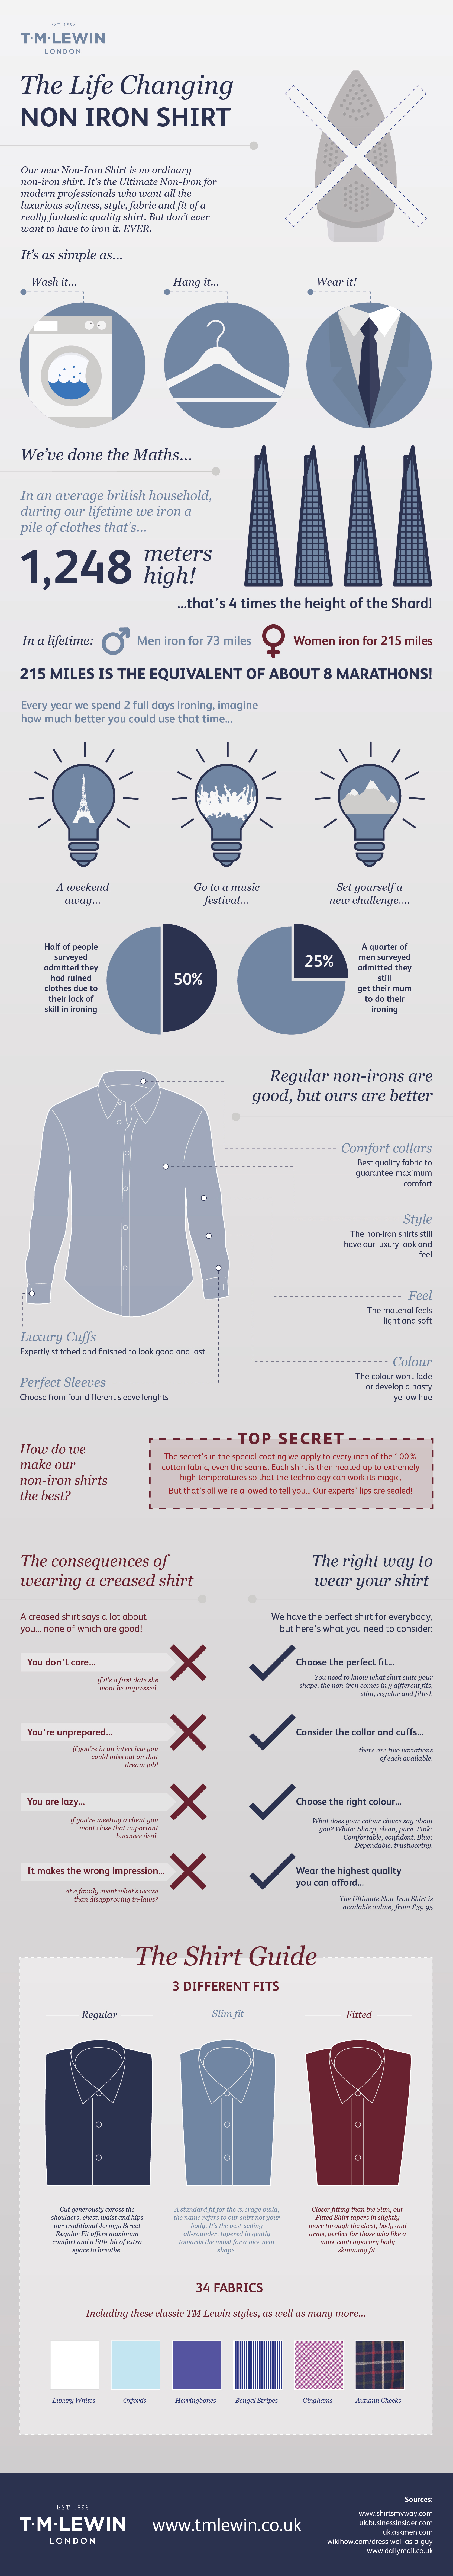 the-life-changing-non-iron-shirt-tips-tisographic